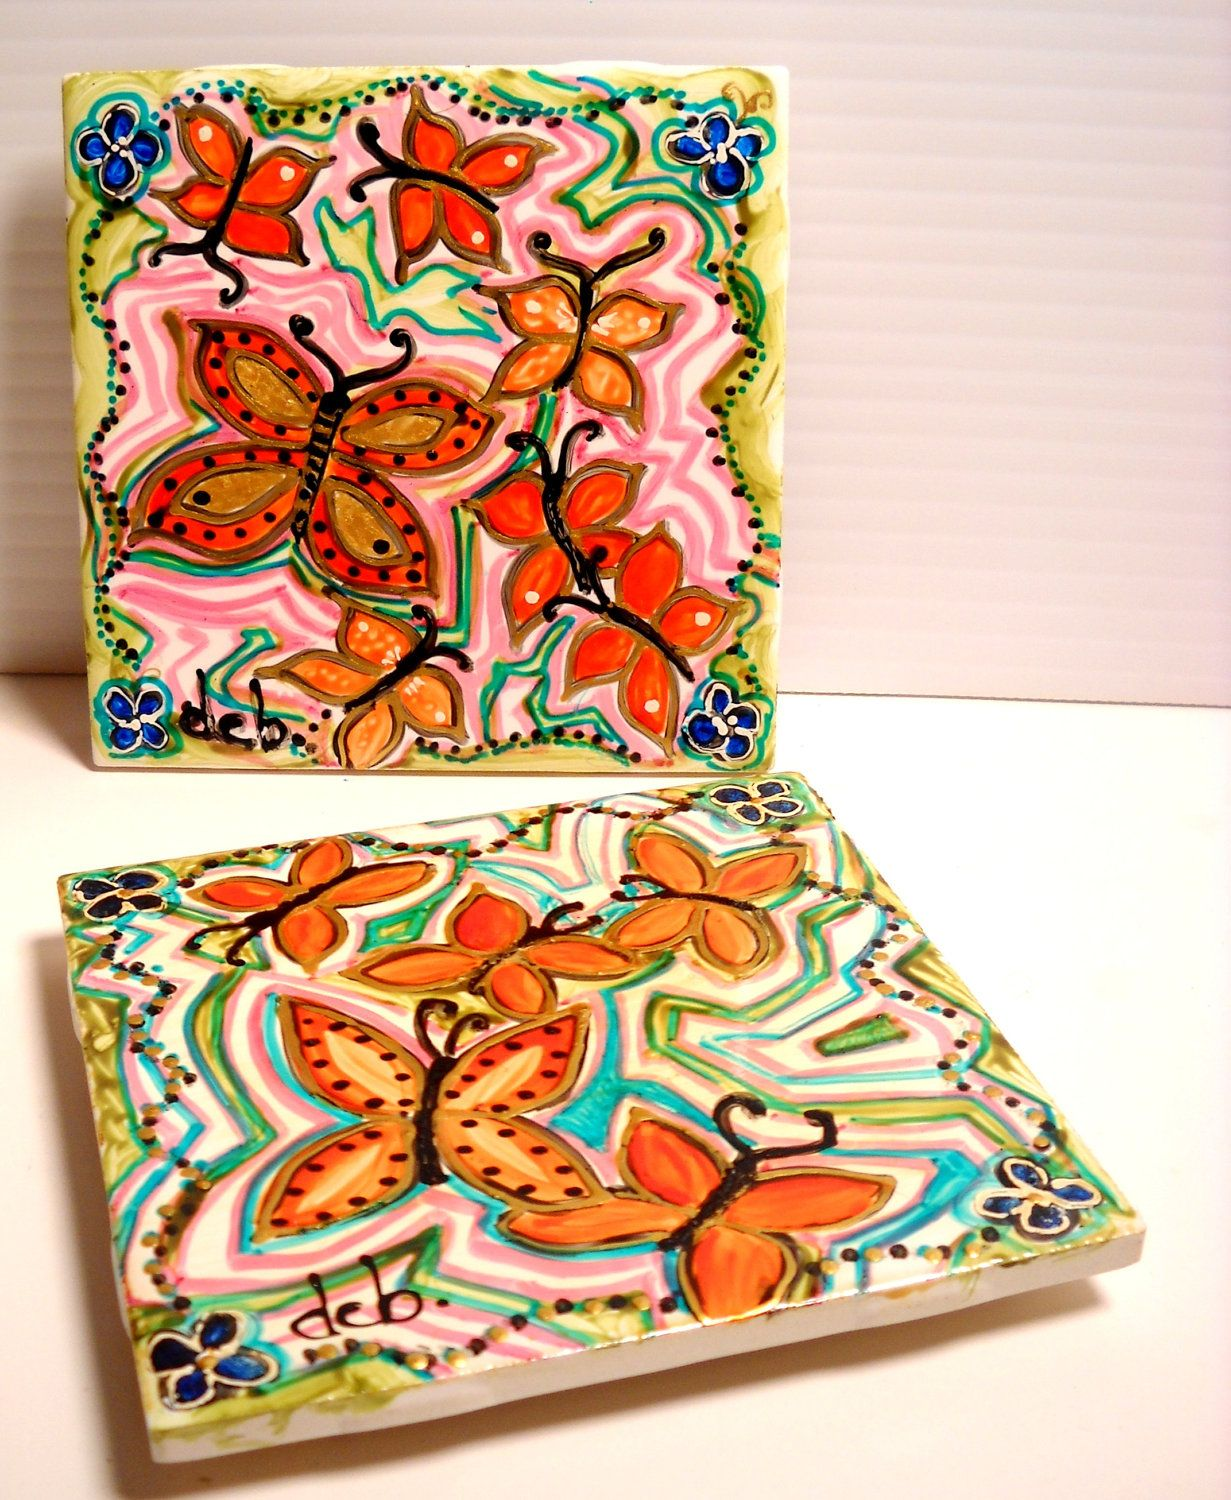 Hand Painted Kitchen Tiles: Hand Painted Ceramic Tiles, Painted CeramicTrivets Chefs